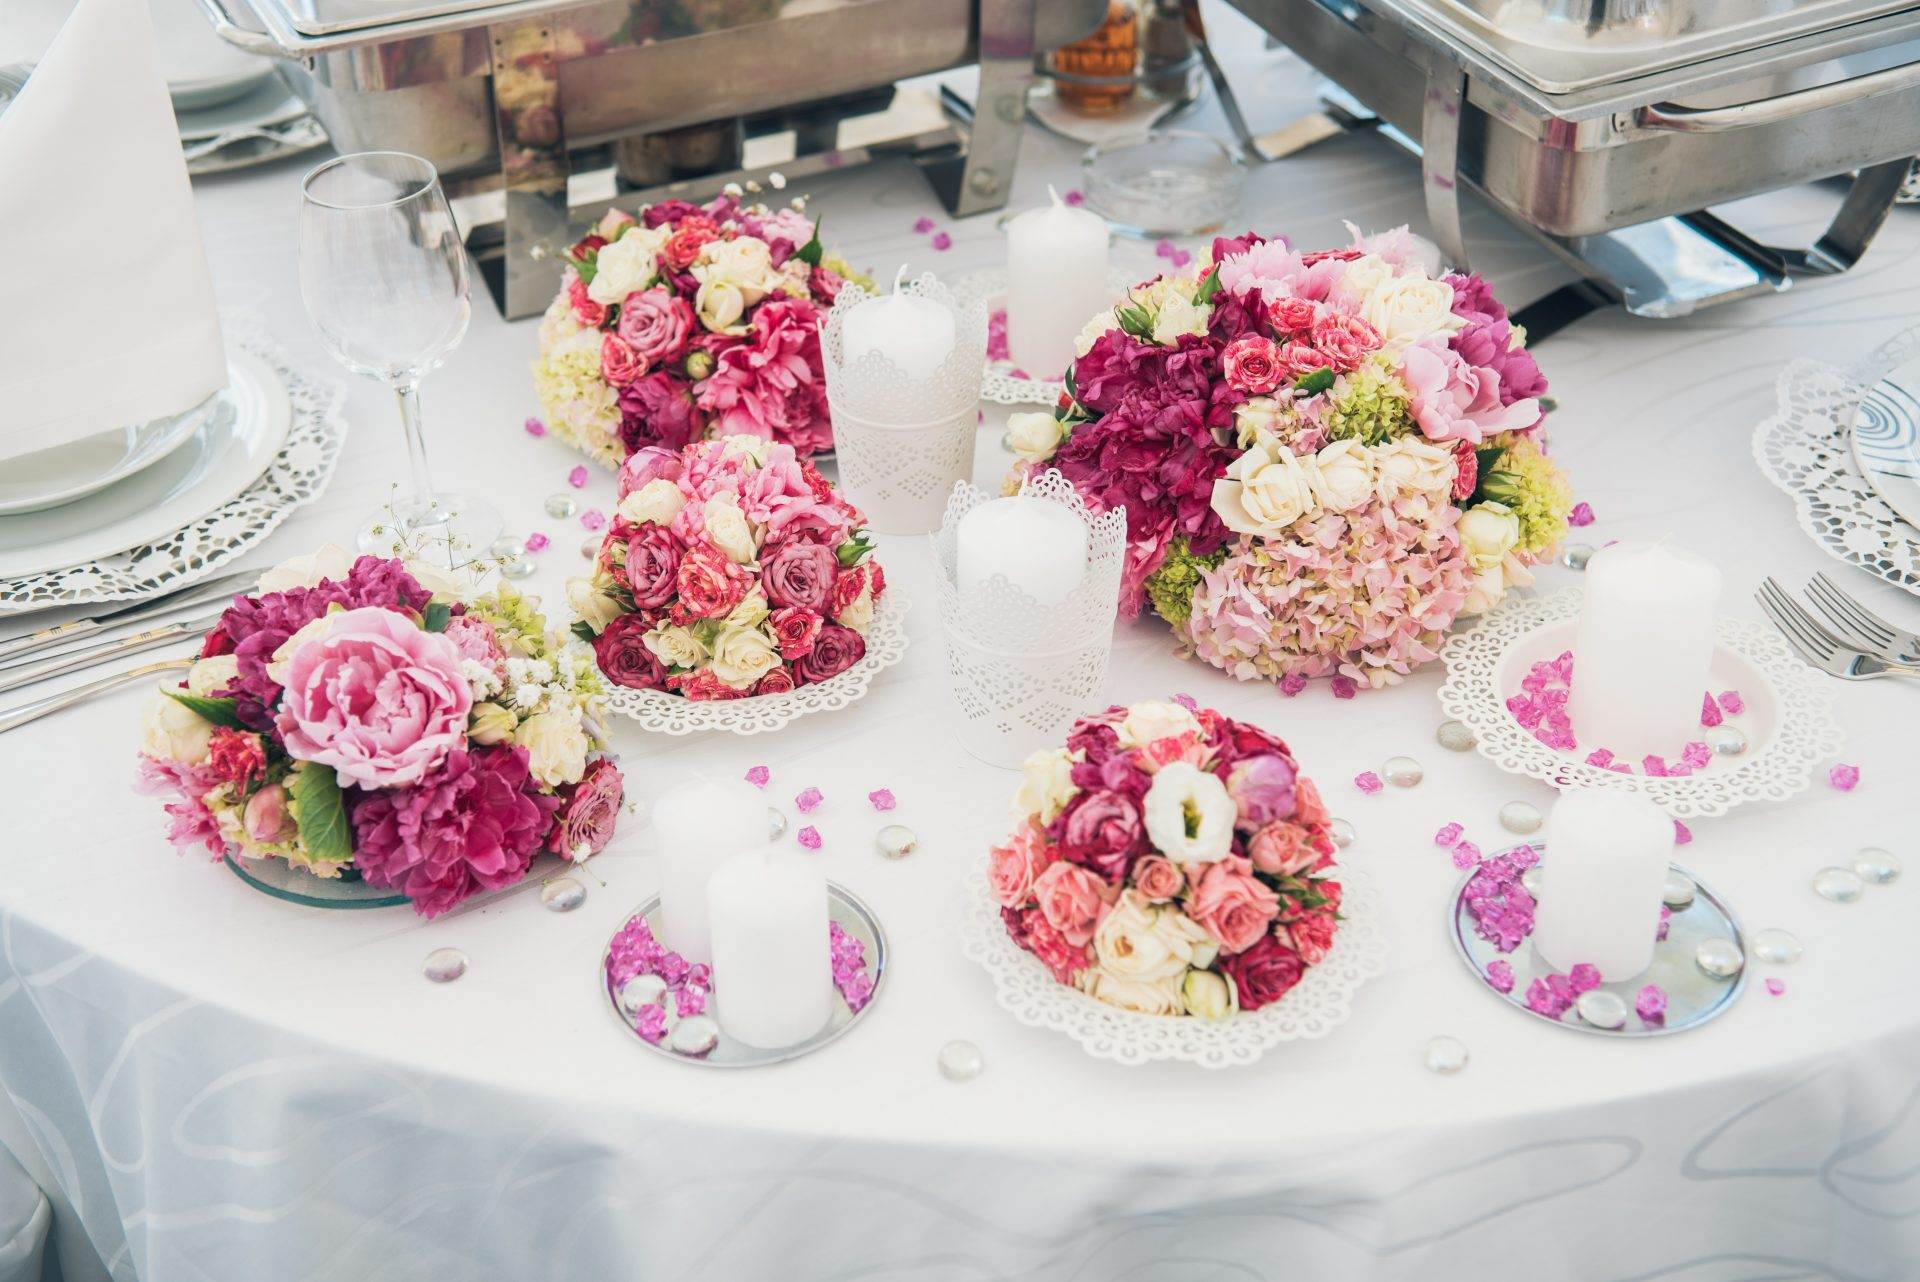 After a funeral, it is customary to hold a funeral reception service that allows the gathering of friends and family members the opportunity to meet in an informal setting.